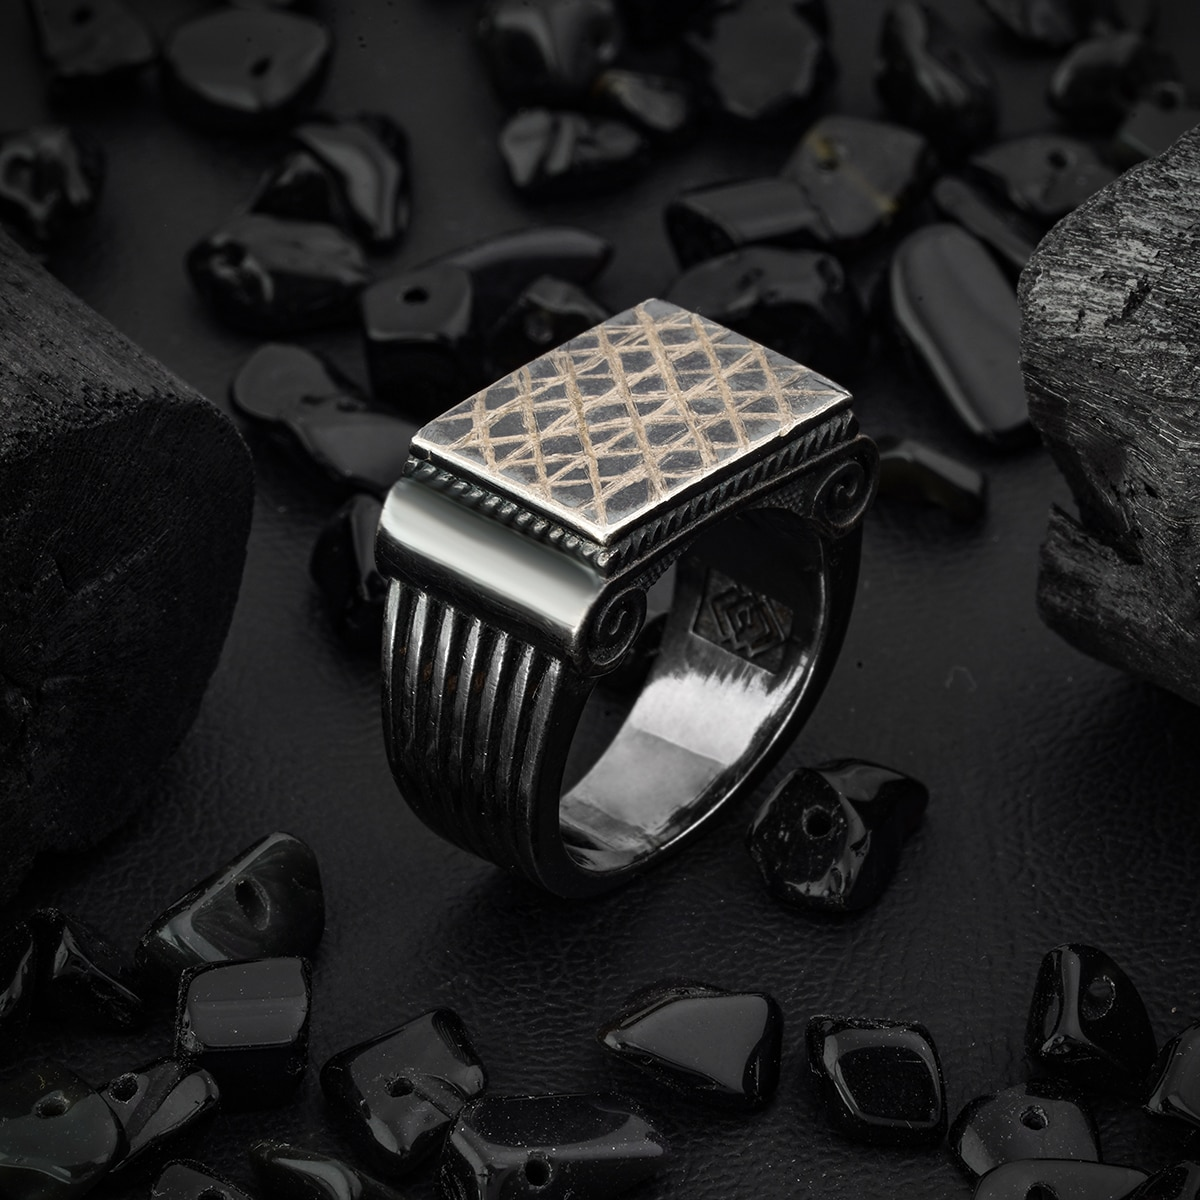 Guaranteed High-quality 925 Sterling Silver Ring Jewelry Made in Turkey in a luxurious way for men with gift